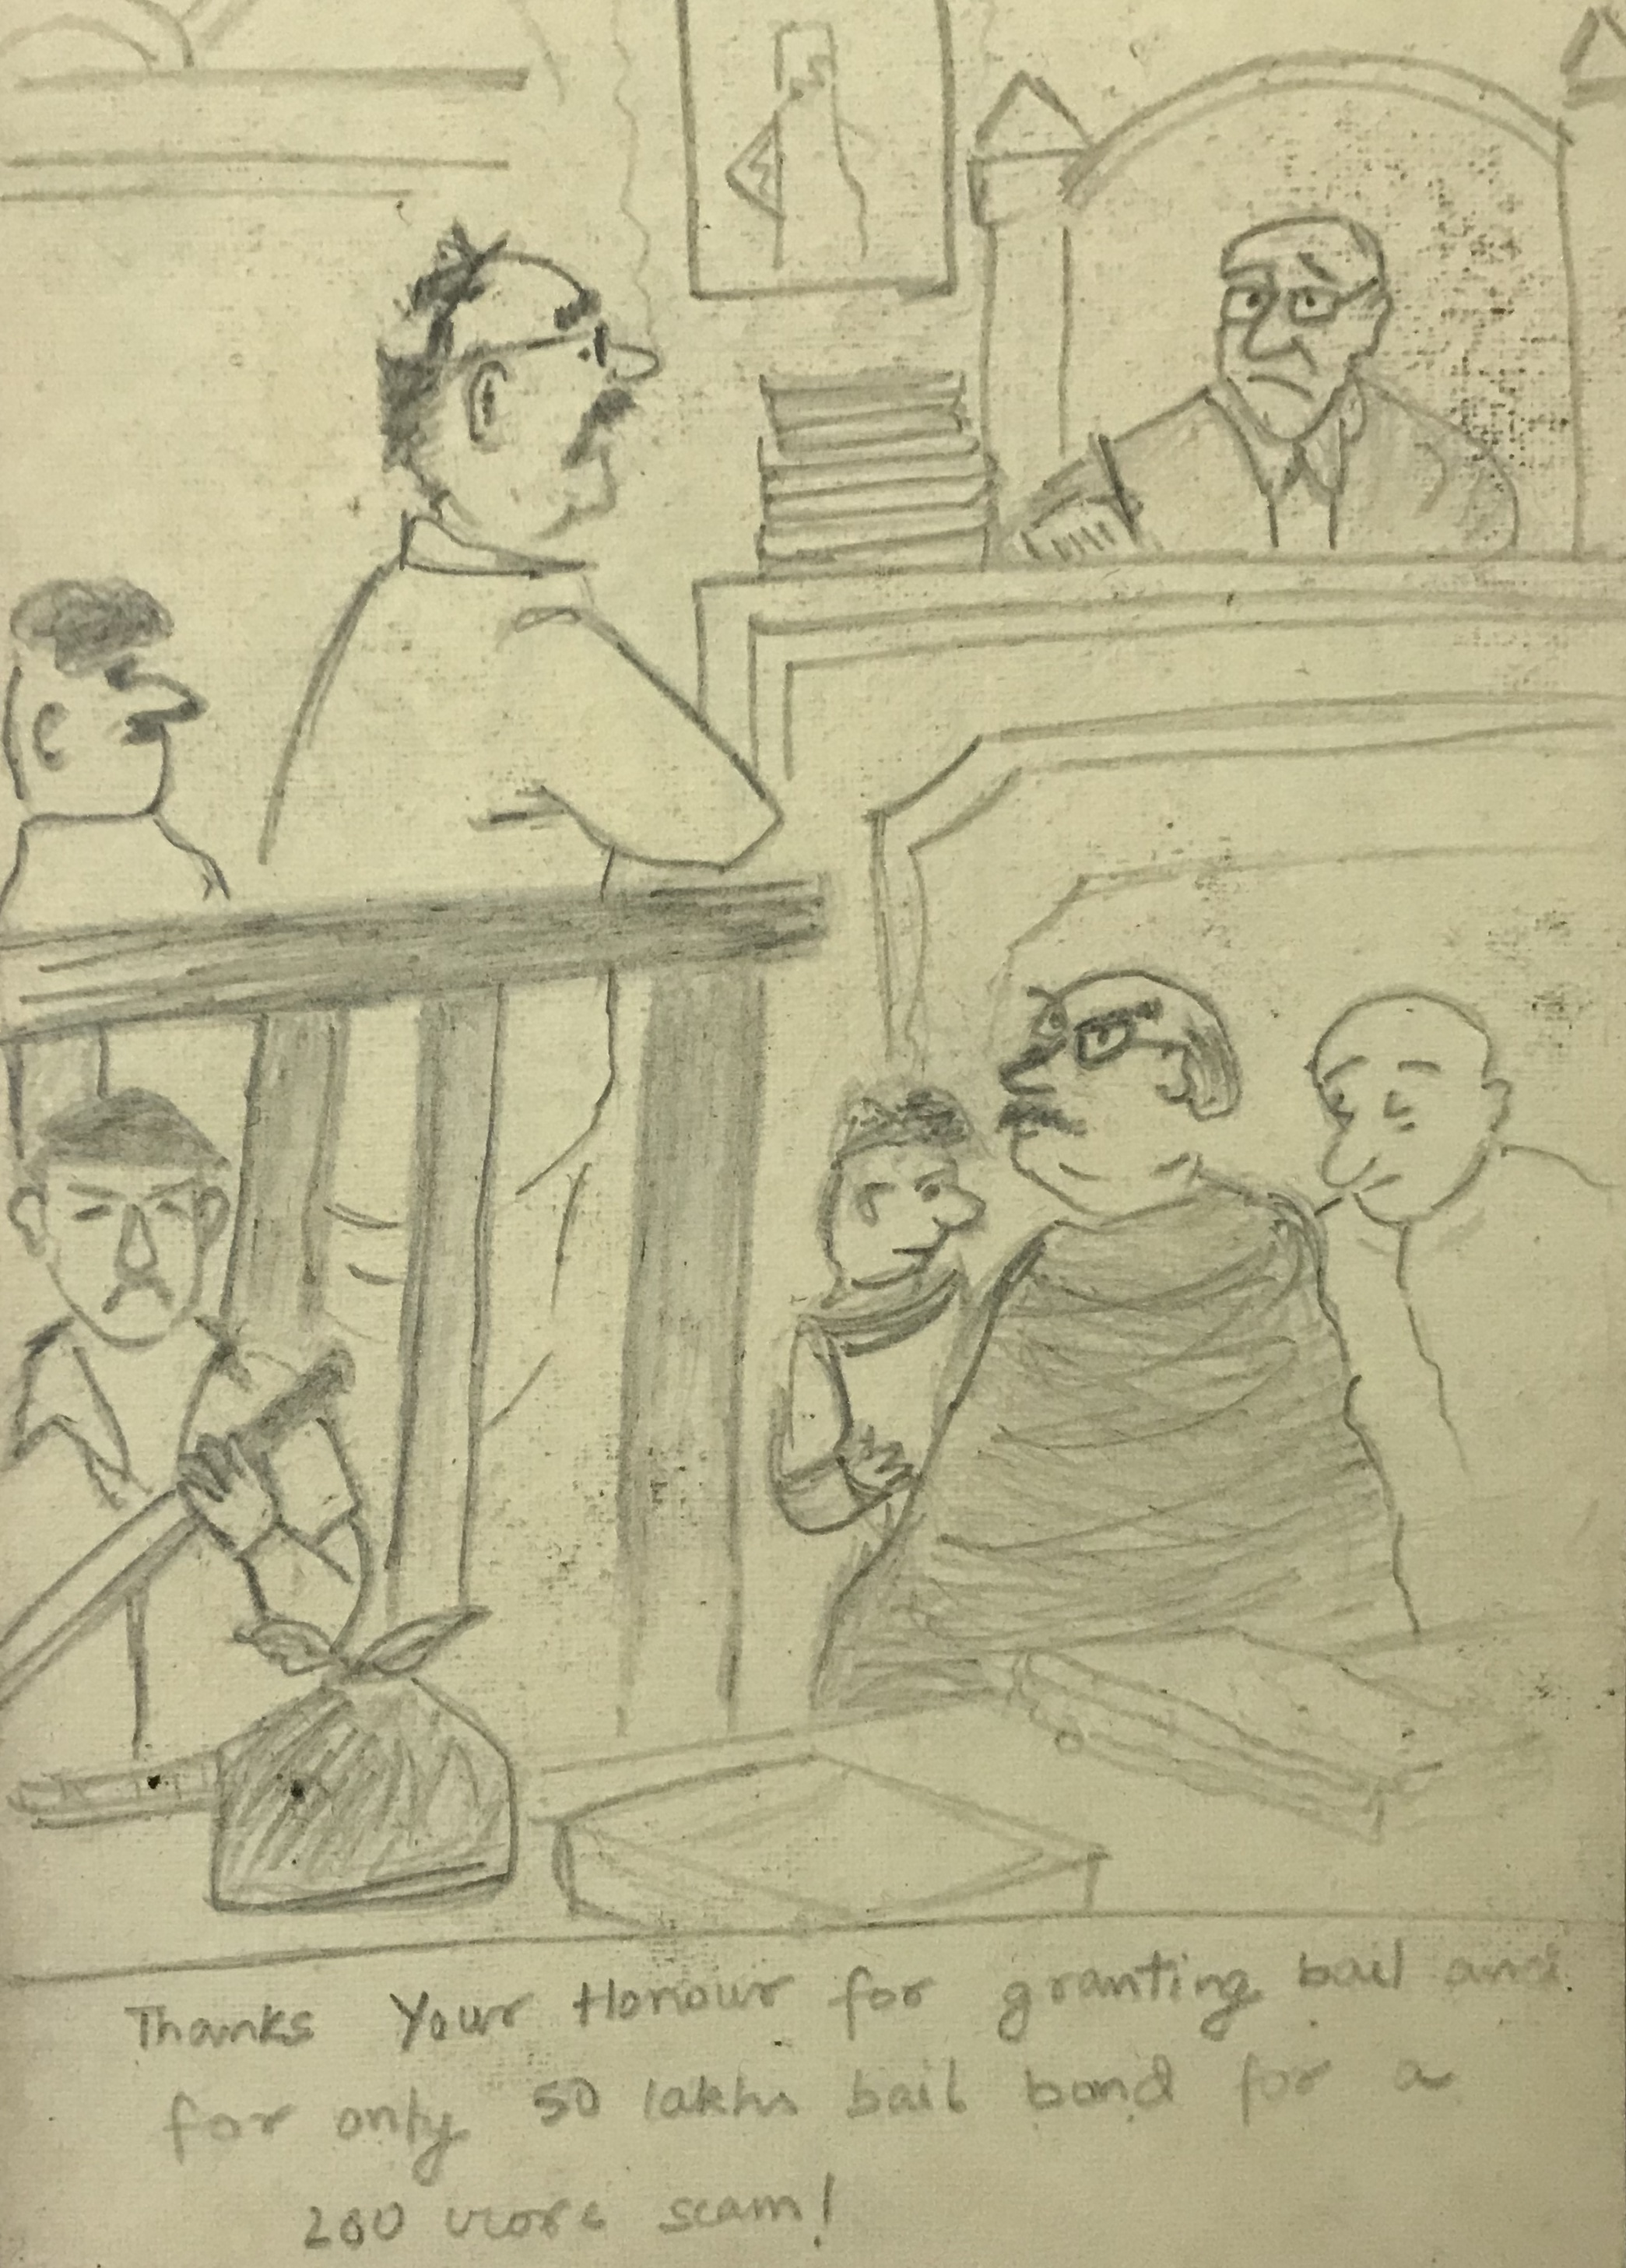 Trial of a Politician